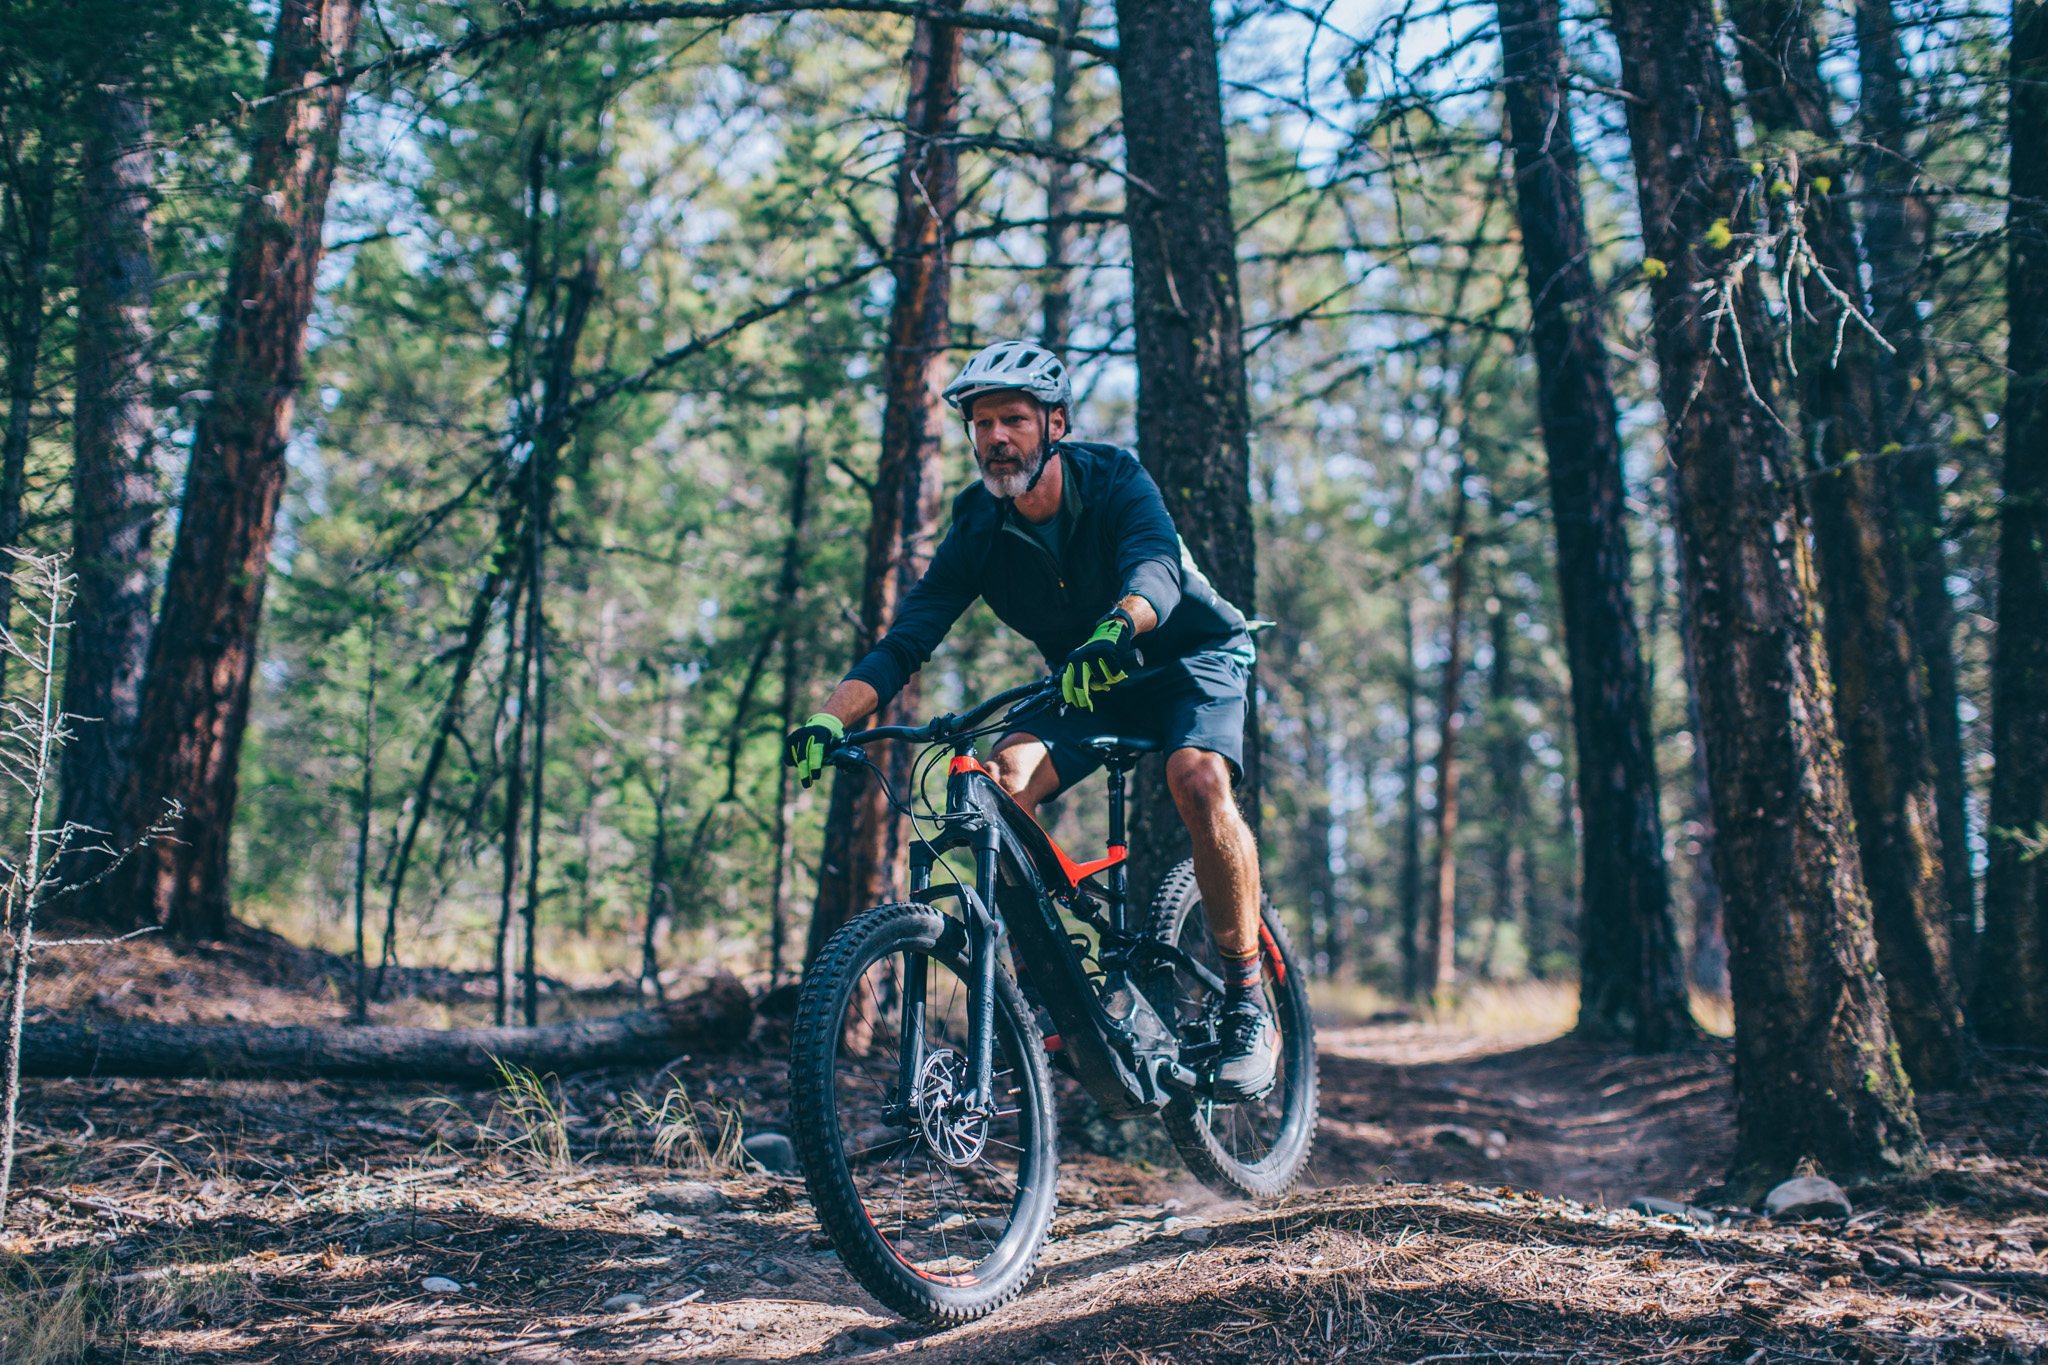 Specialized Turbo Levo electric mountain bike review